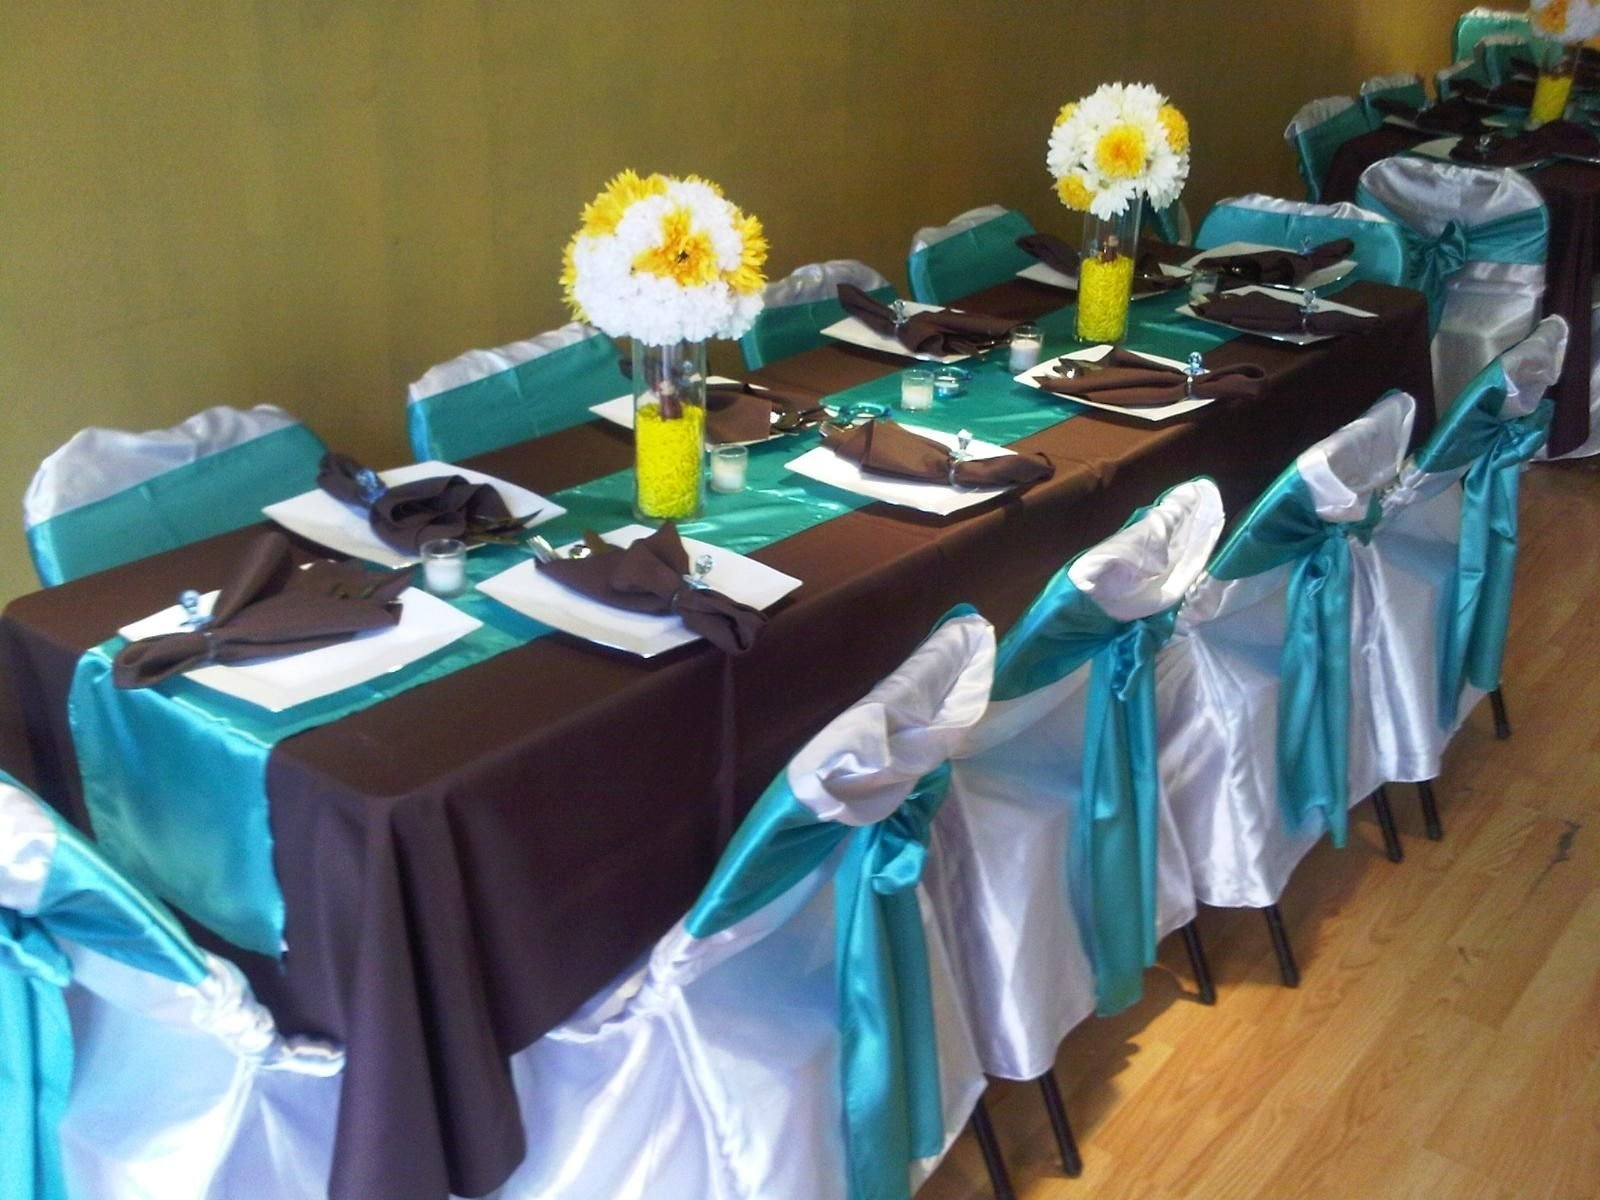 10 Fabulous Blue And Brown Baby Shower Ideas inexpensive baby shower ideas baby shower centerpiece ideas 2 2020